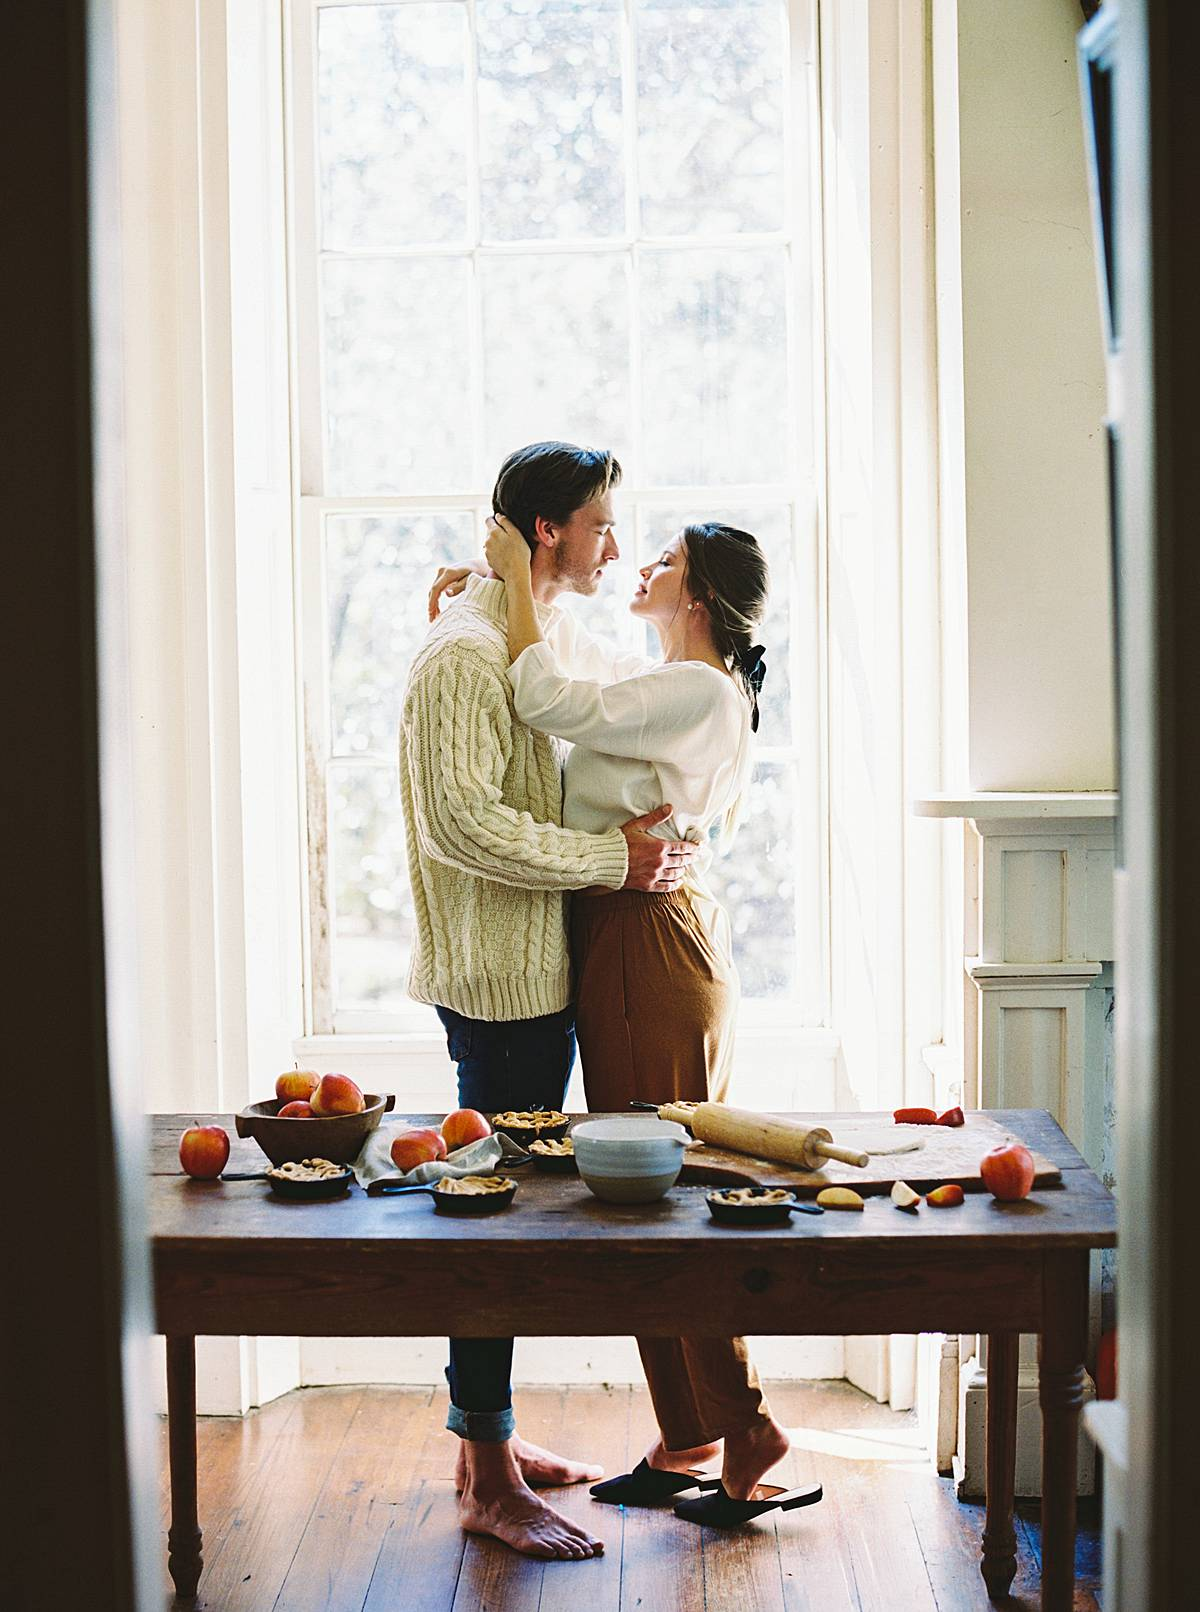 charleston elopement photography adventure on film with bride and groom in kitchen making pies